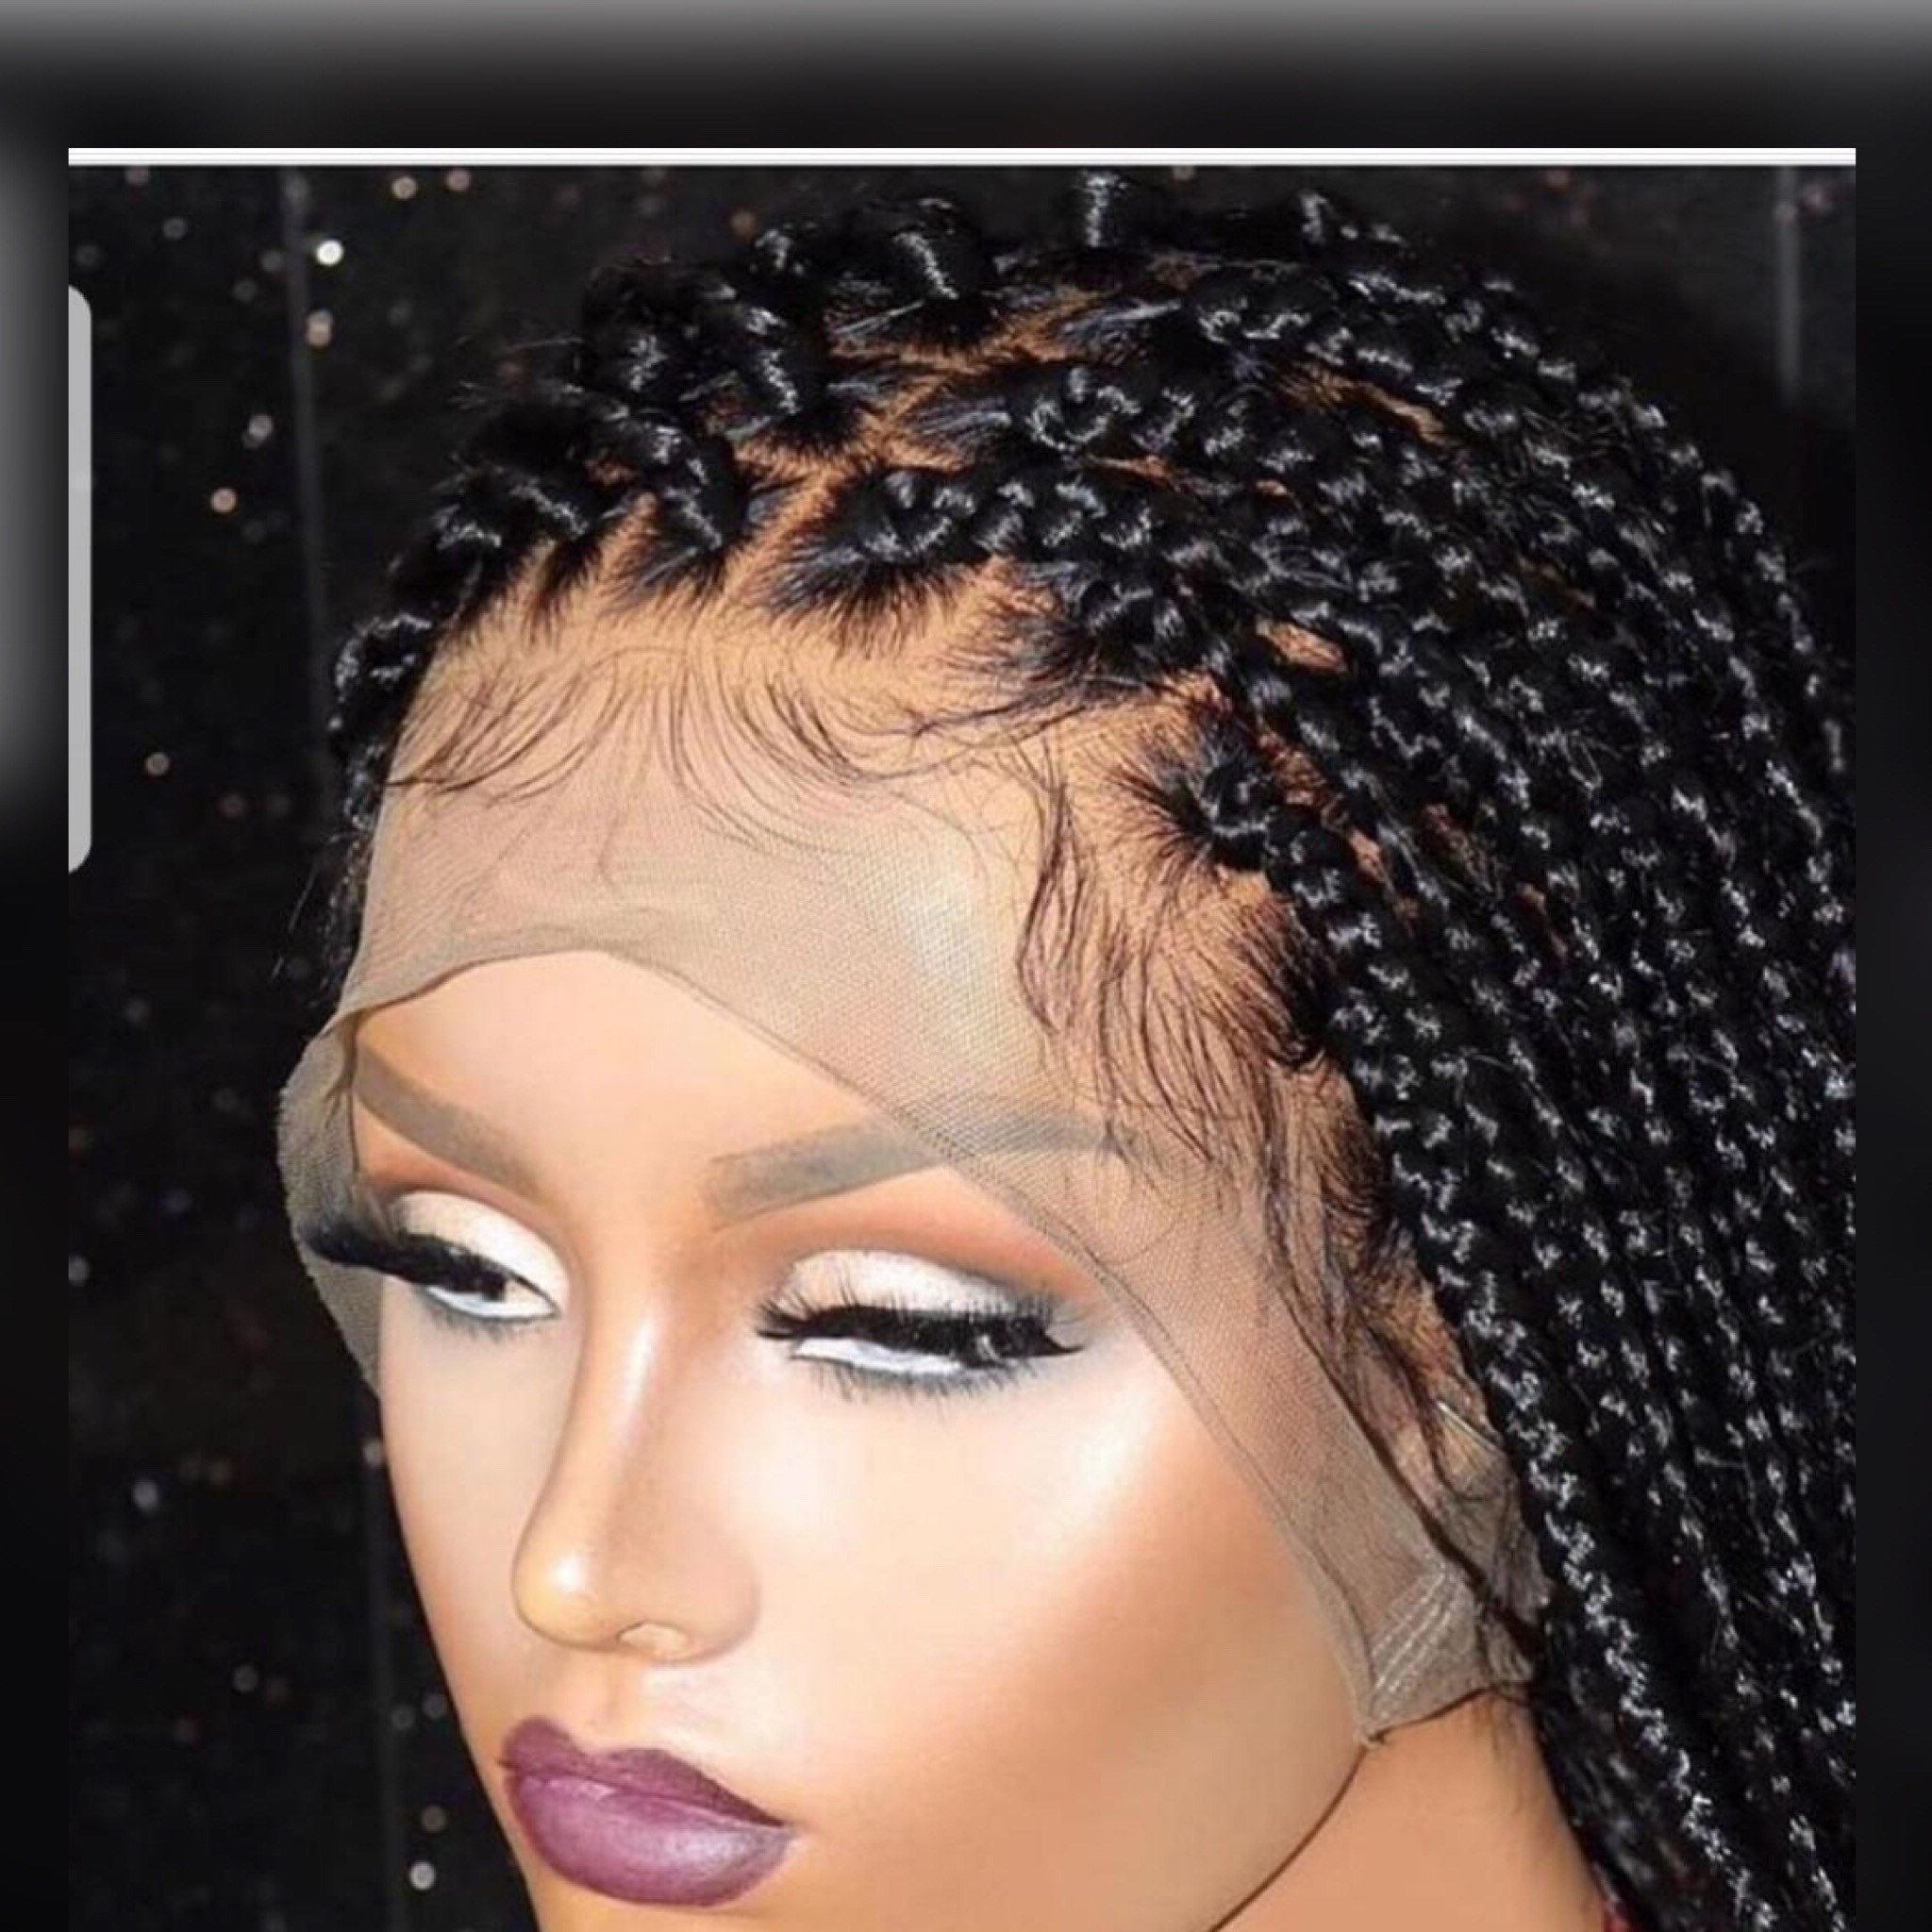 Widely Used Cleopatra Micro Braids In Box Braided Wigs Full Lace Front Wig Box Braids Wig Micro Braids Faux Locs Cute Braided Wigs For Black Women Braid Wig Cornrow Wig Passion (View 8 of 20)